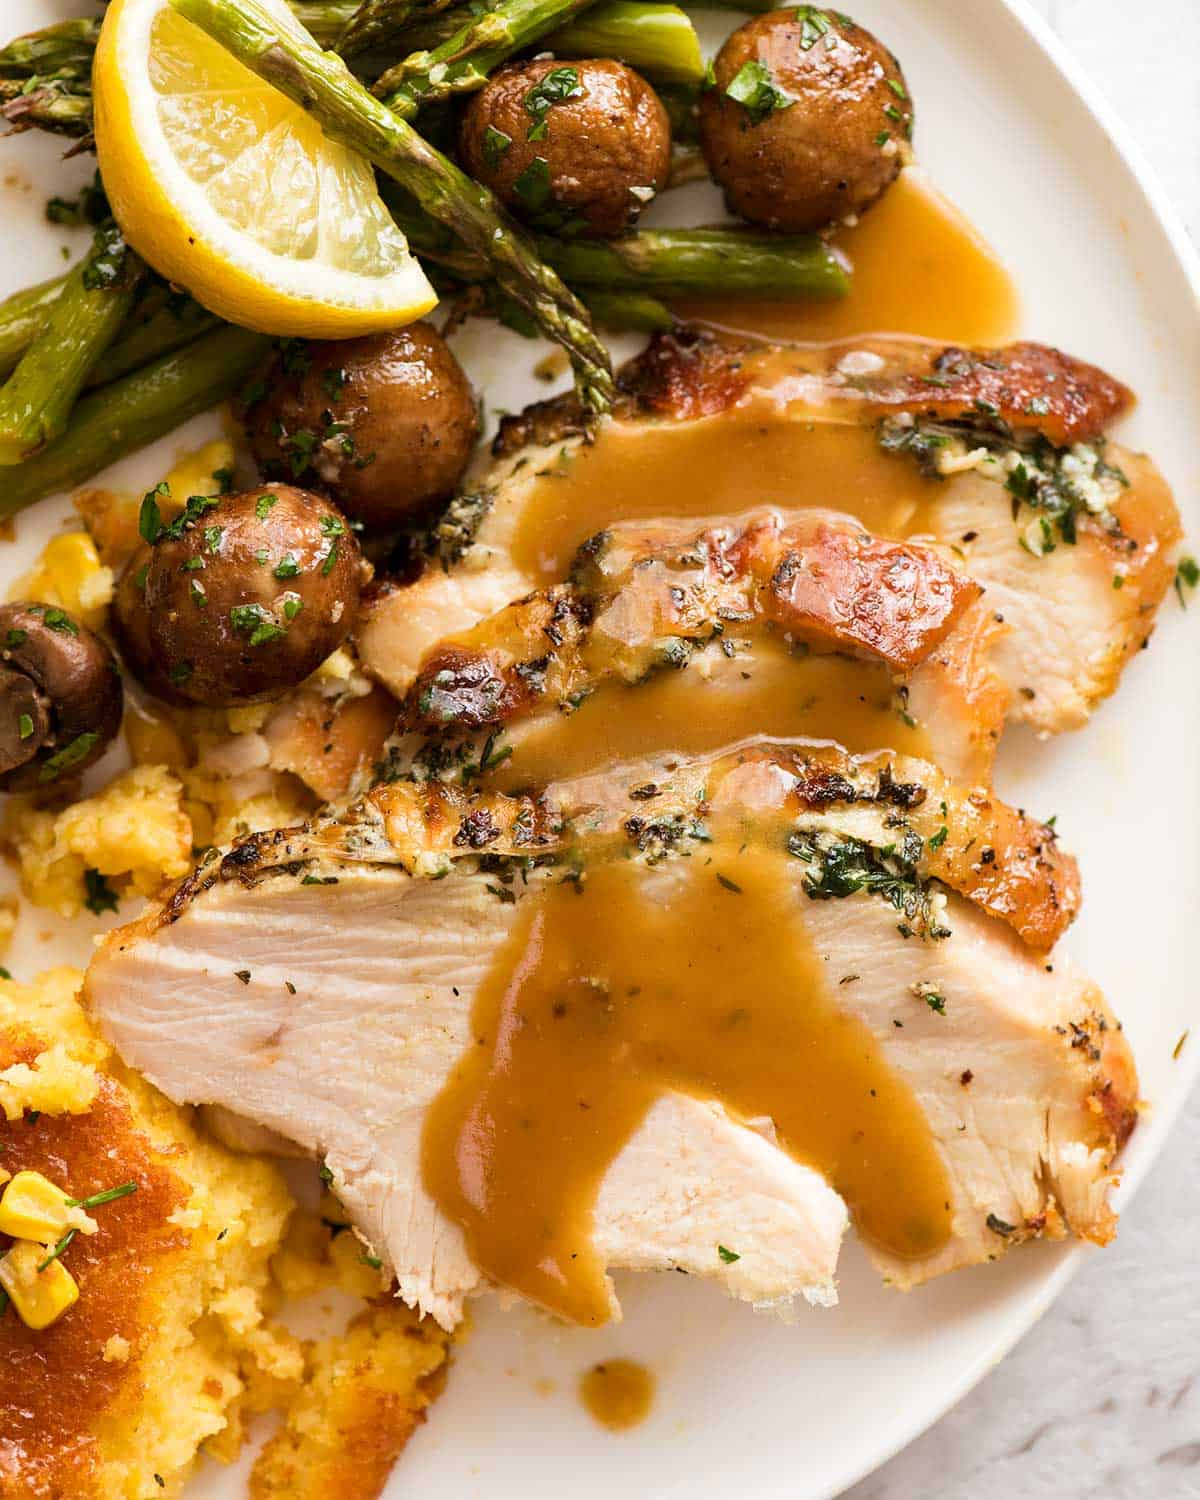 Garlic Herb Slow Cooker Turkey Breast dinner plate with creamy corn casserole, roasted mushrooms, and lemon garlic asparagus